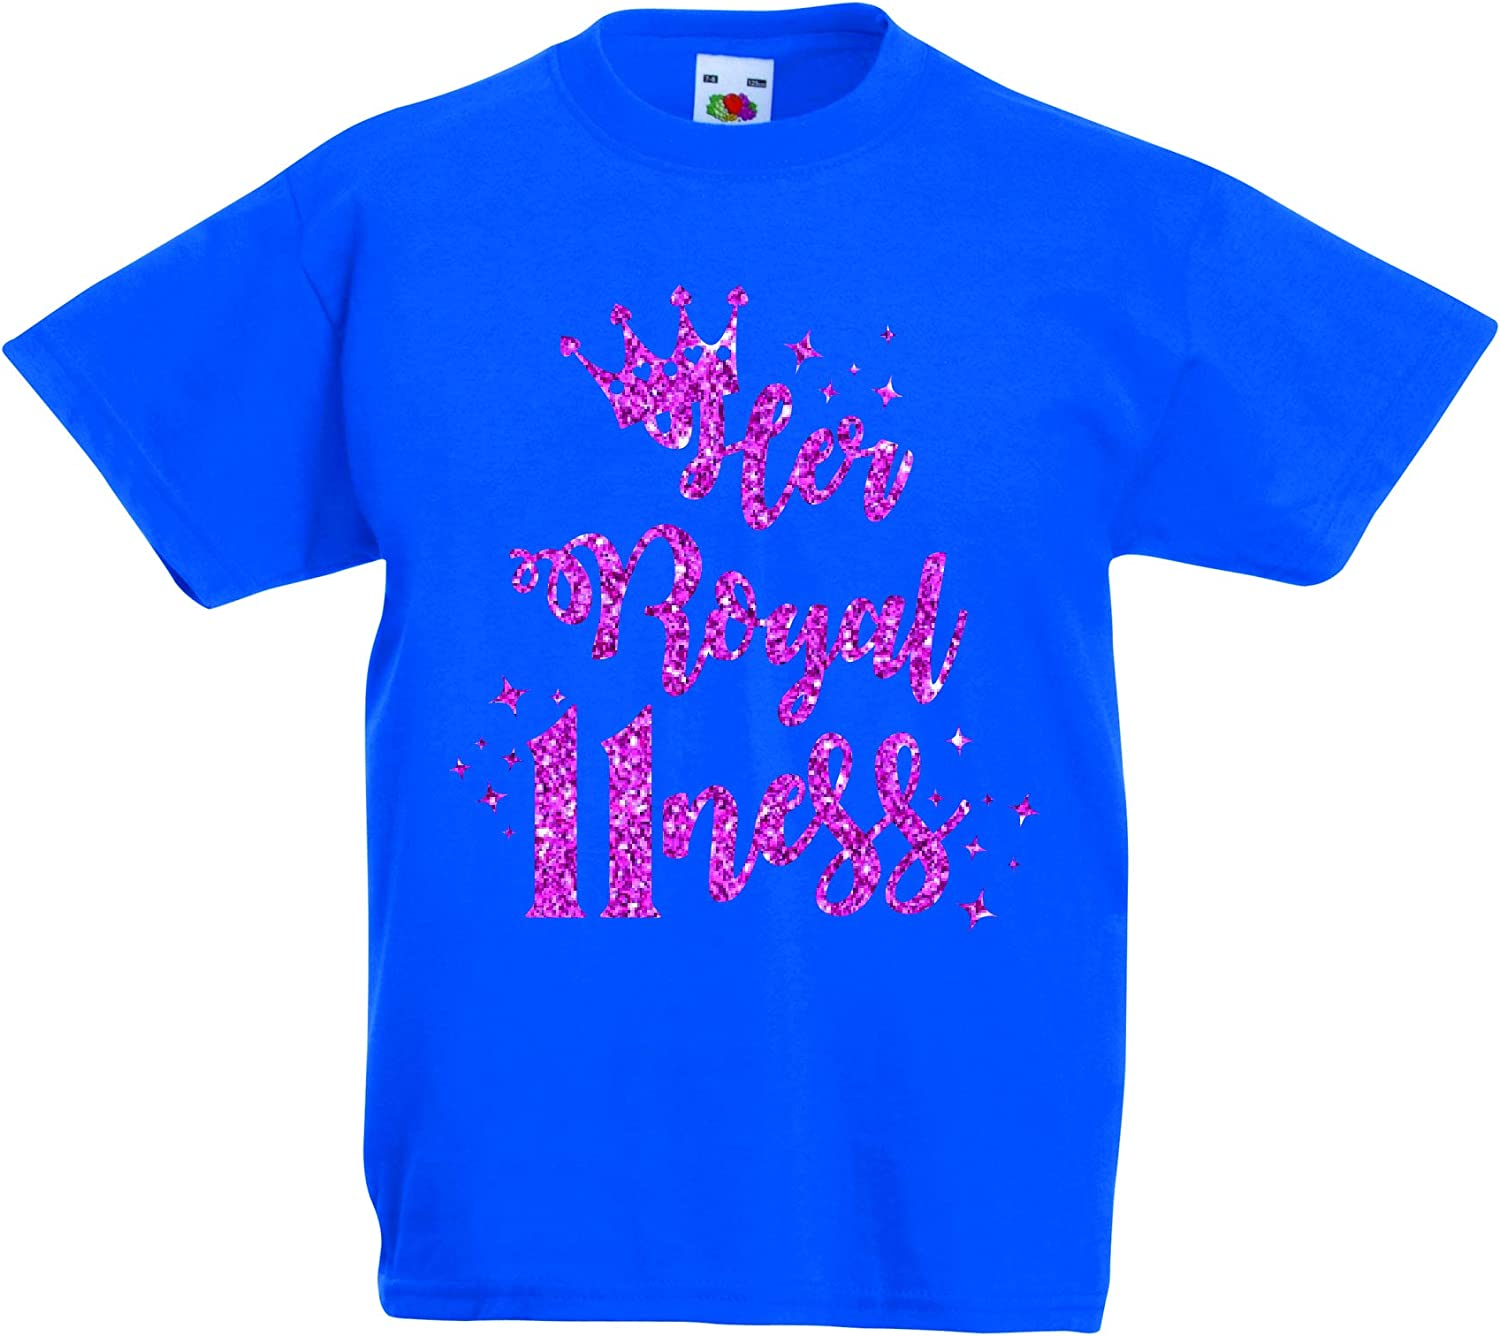 11 Today 11th Birthday T-Shirt Pink Glitter Her Royal 11ness Party T Shirt Girls Tee Kids Age 9-11 and Age 12-13